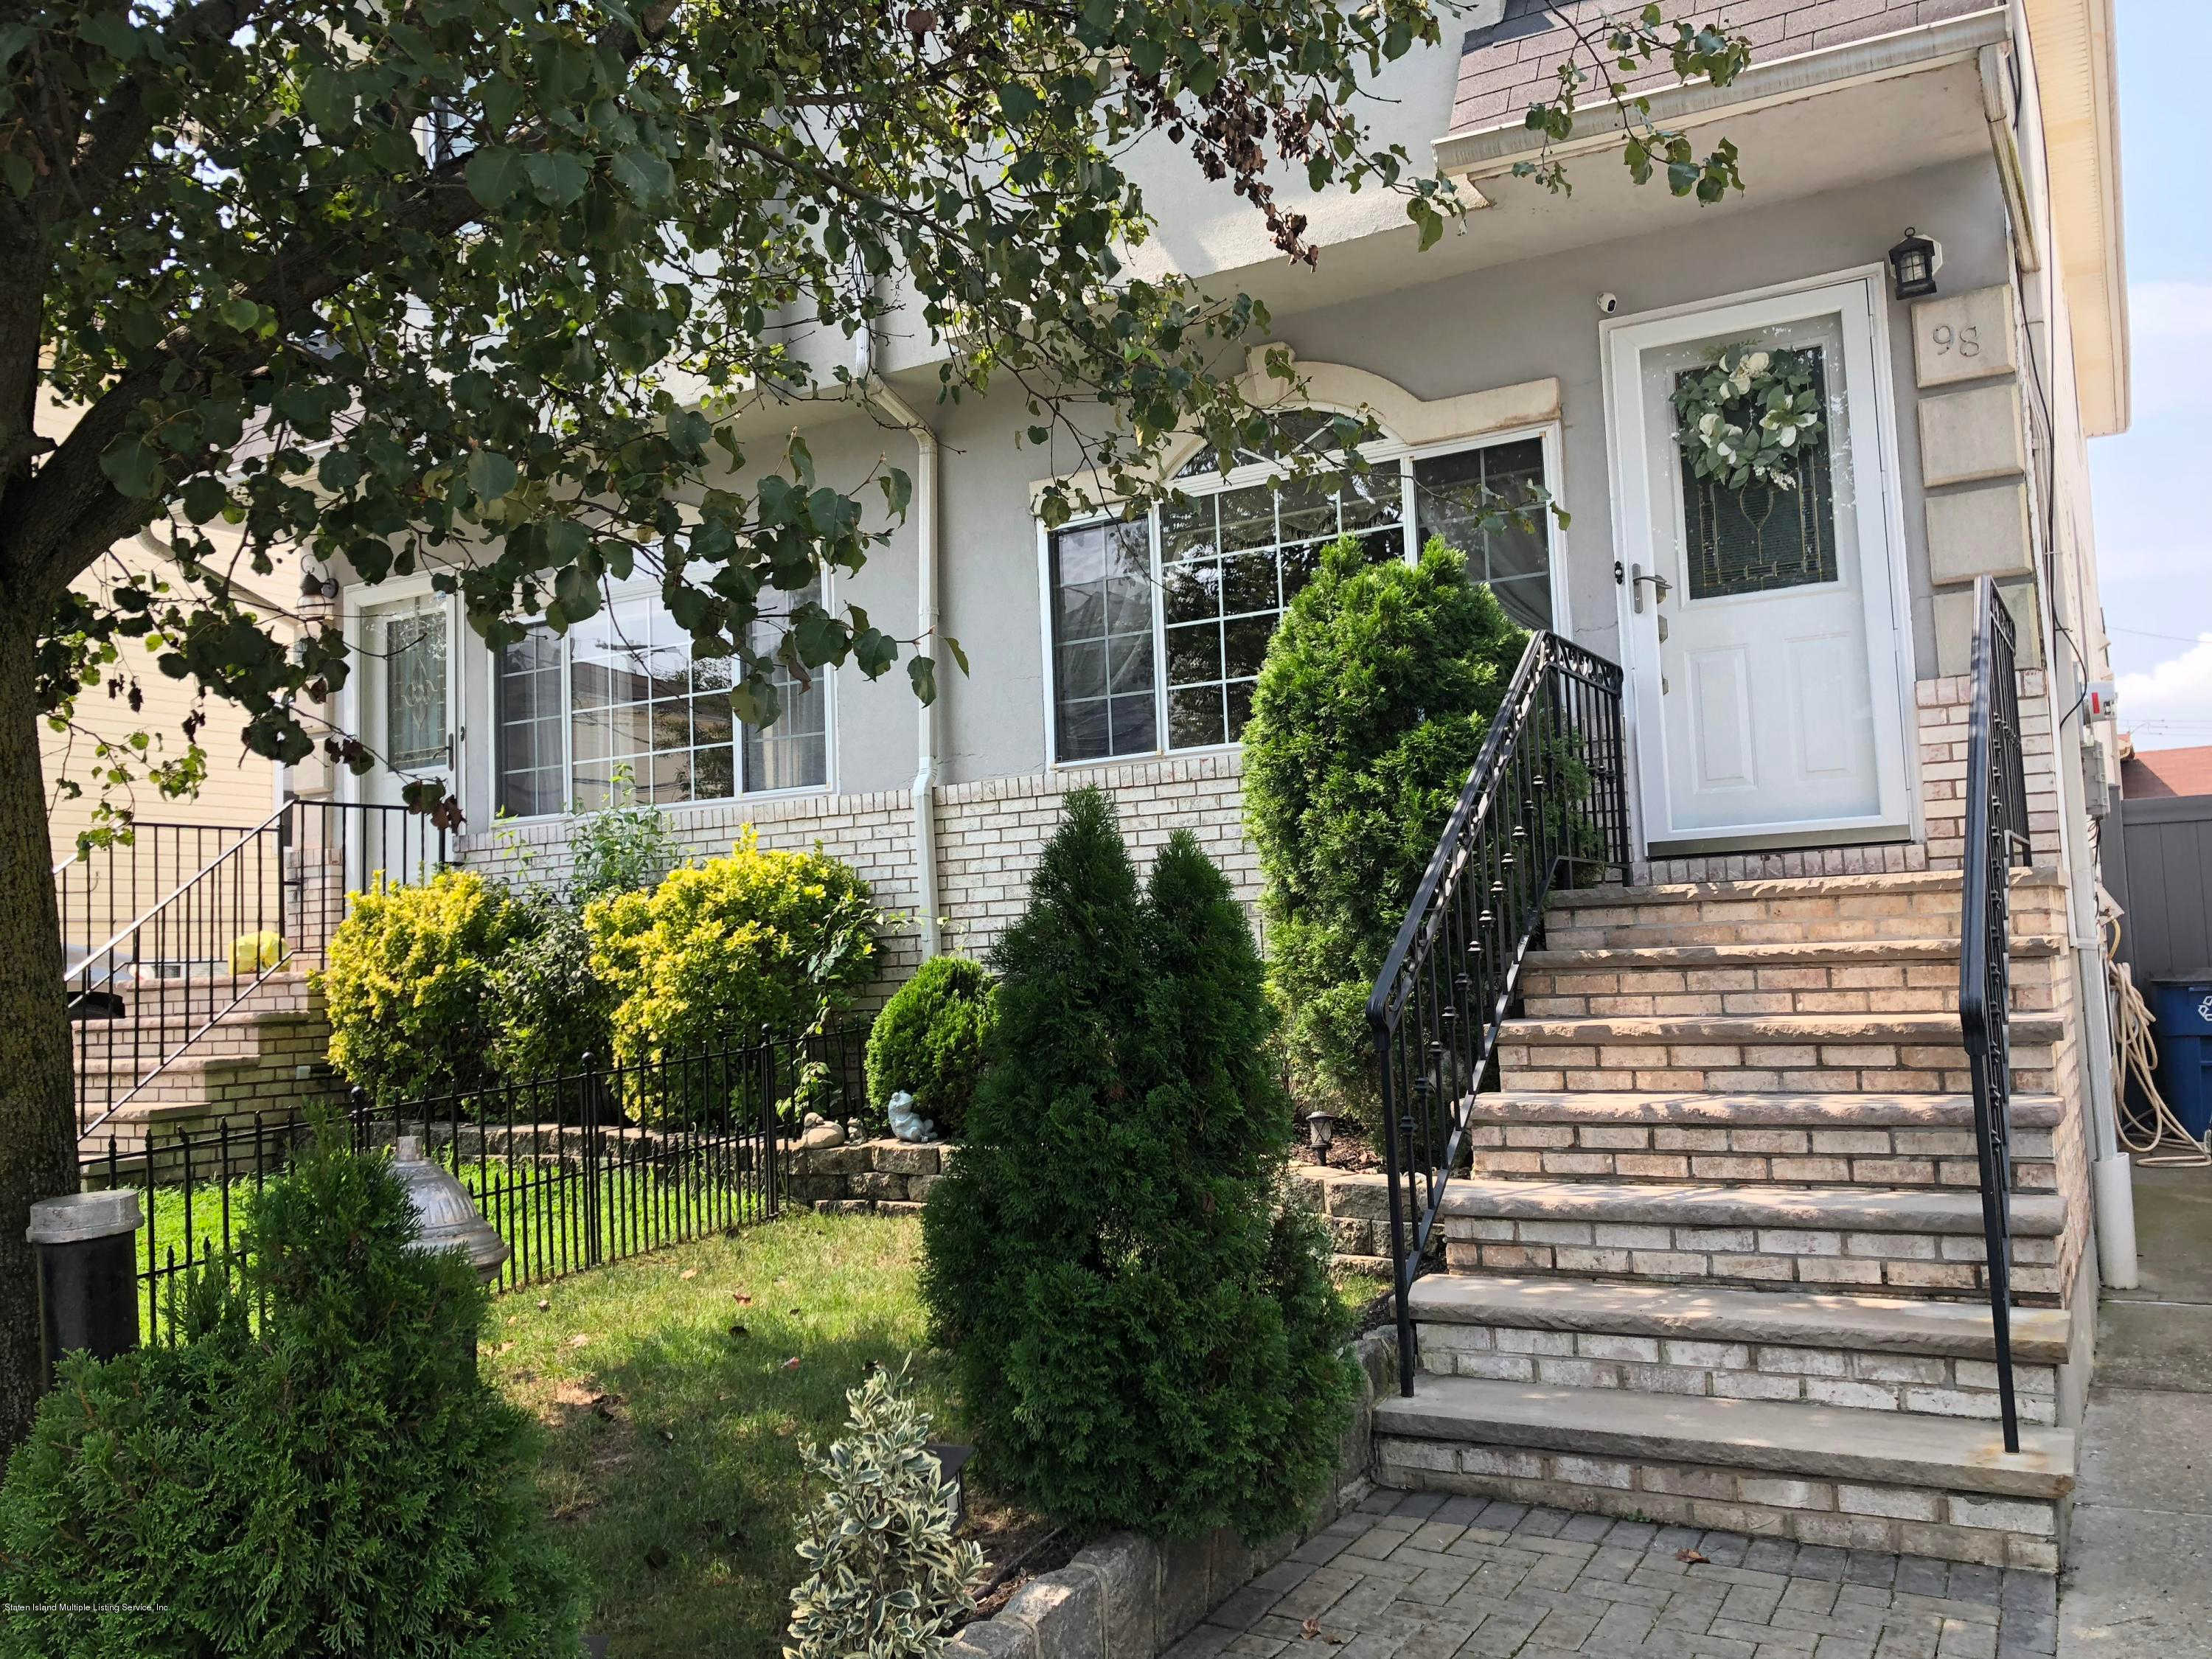 98 Harris Lane, Staten Island, NY 10309 has an Open House on  Saturday, June 15, 2019 1:30 PM to 3:30 PM